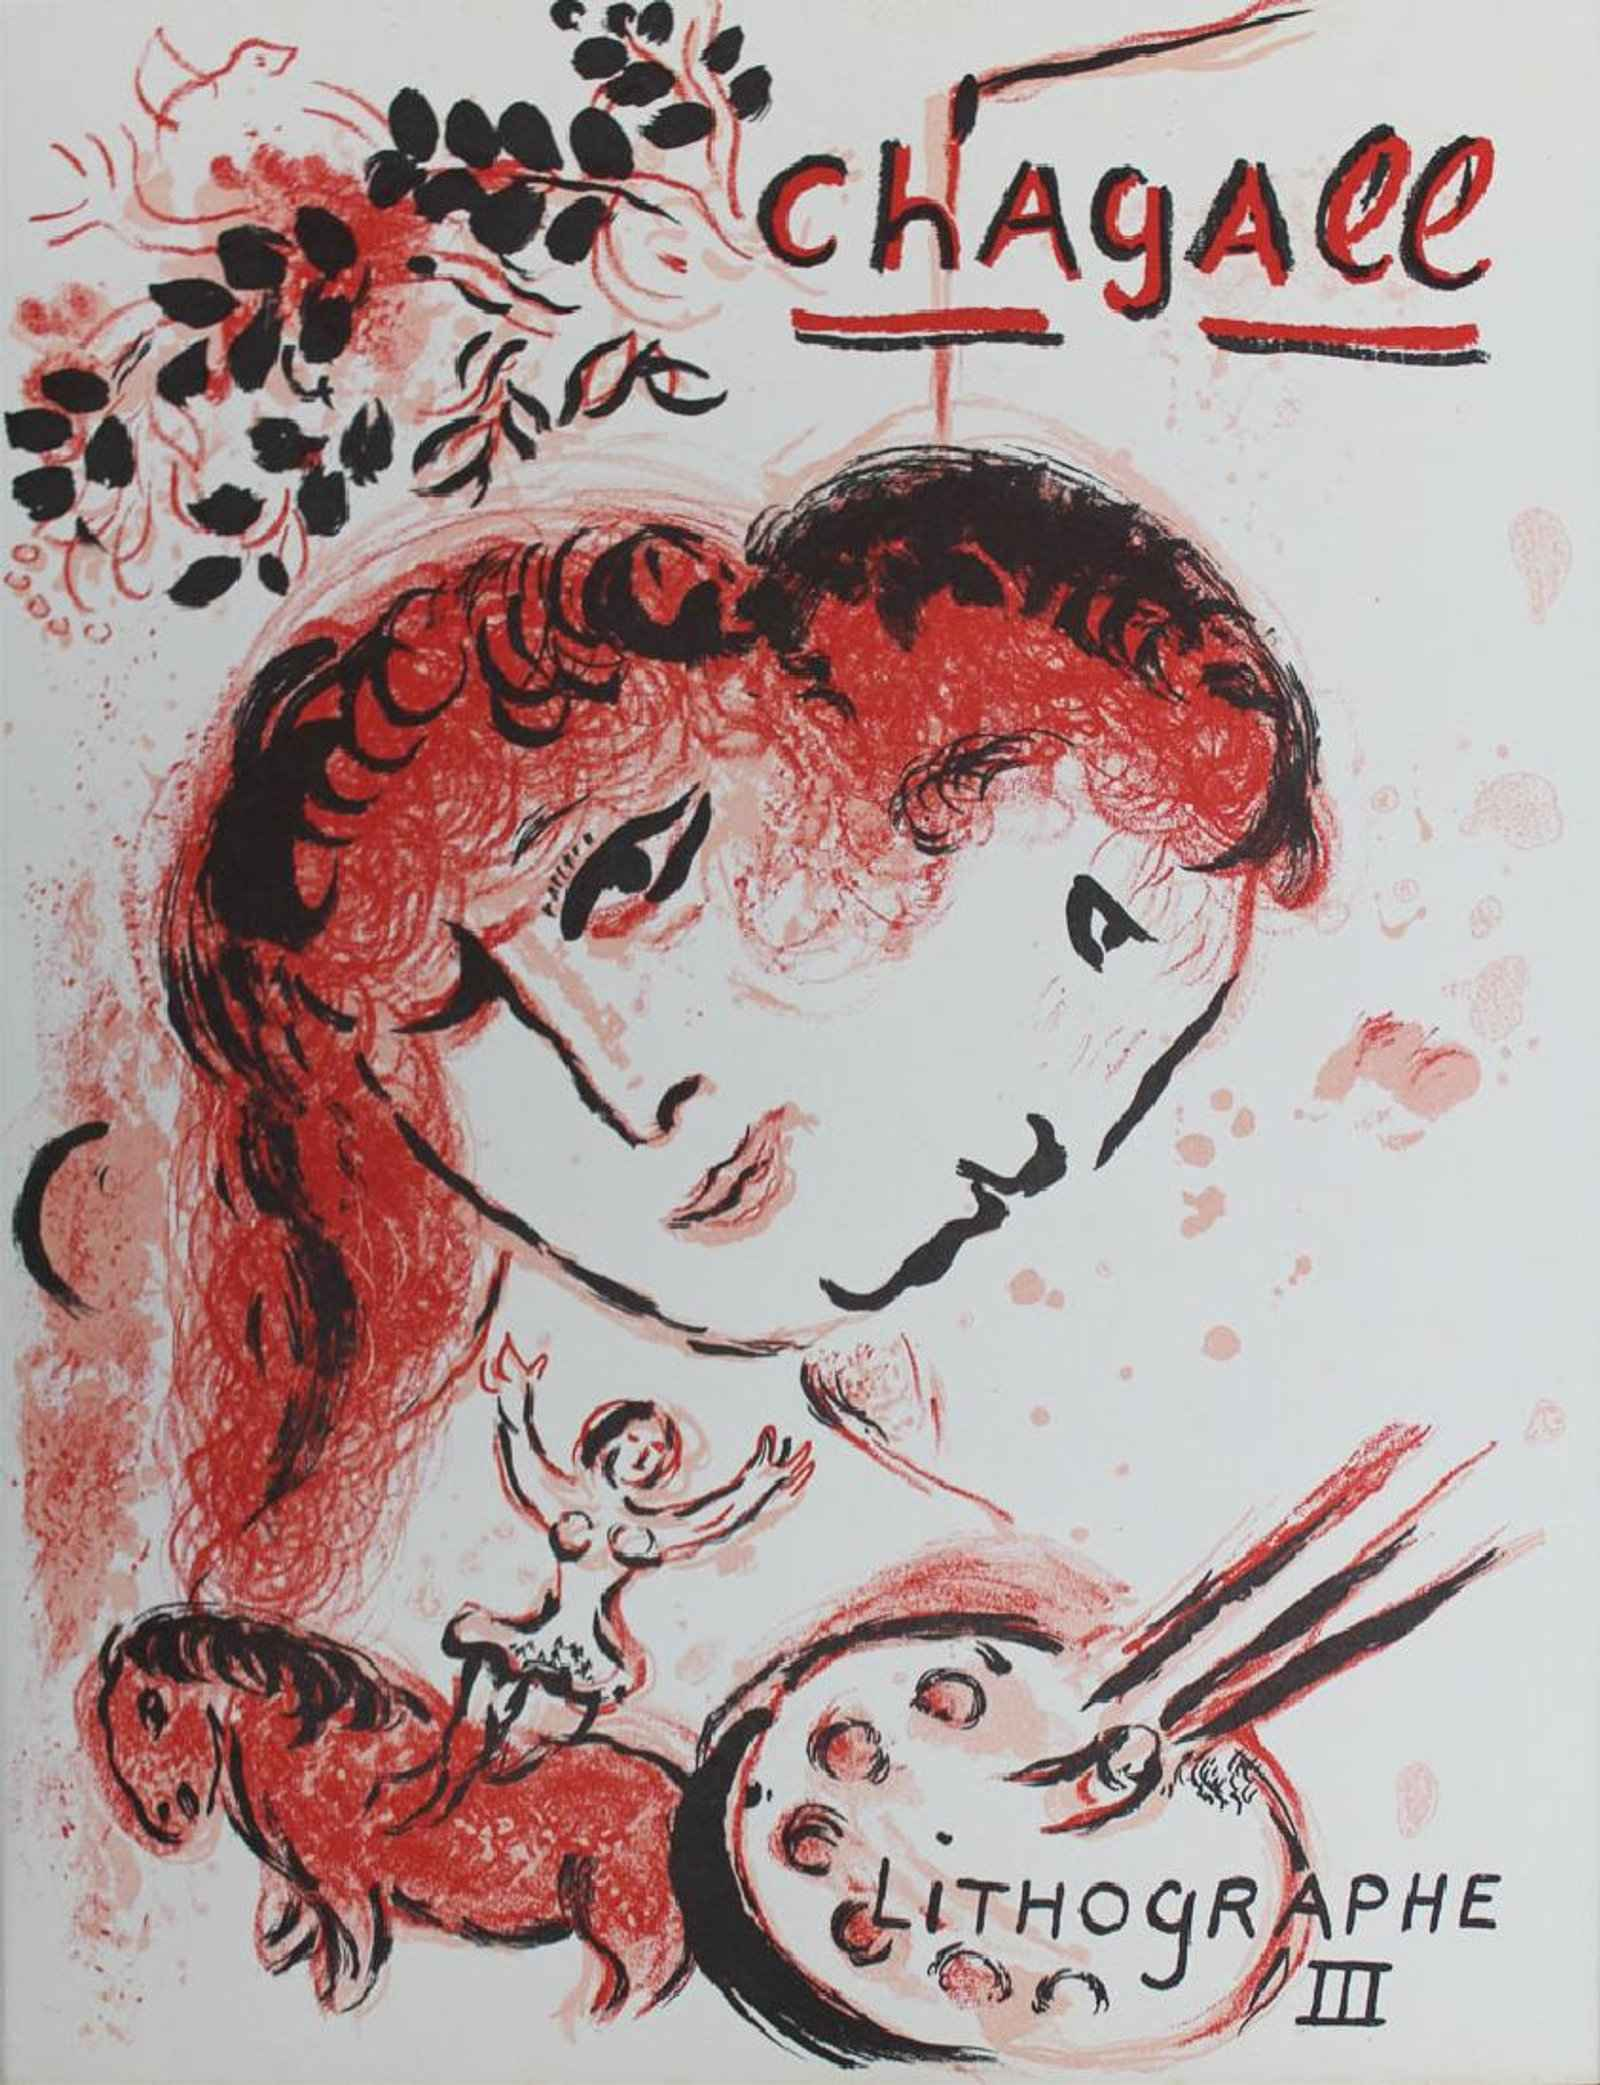 Lithographe III by  Marc Chagall - Masterpiece Online